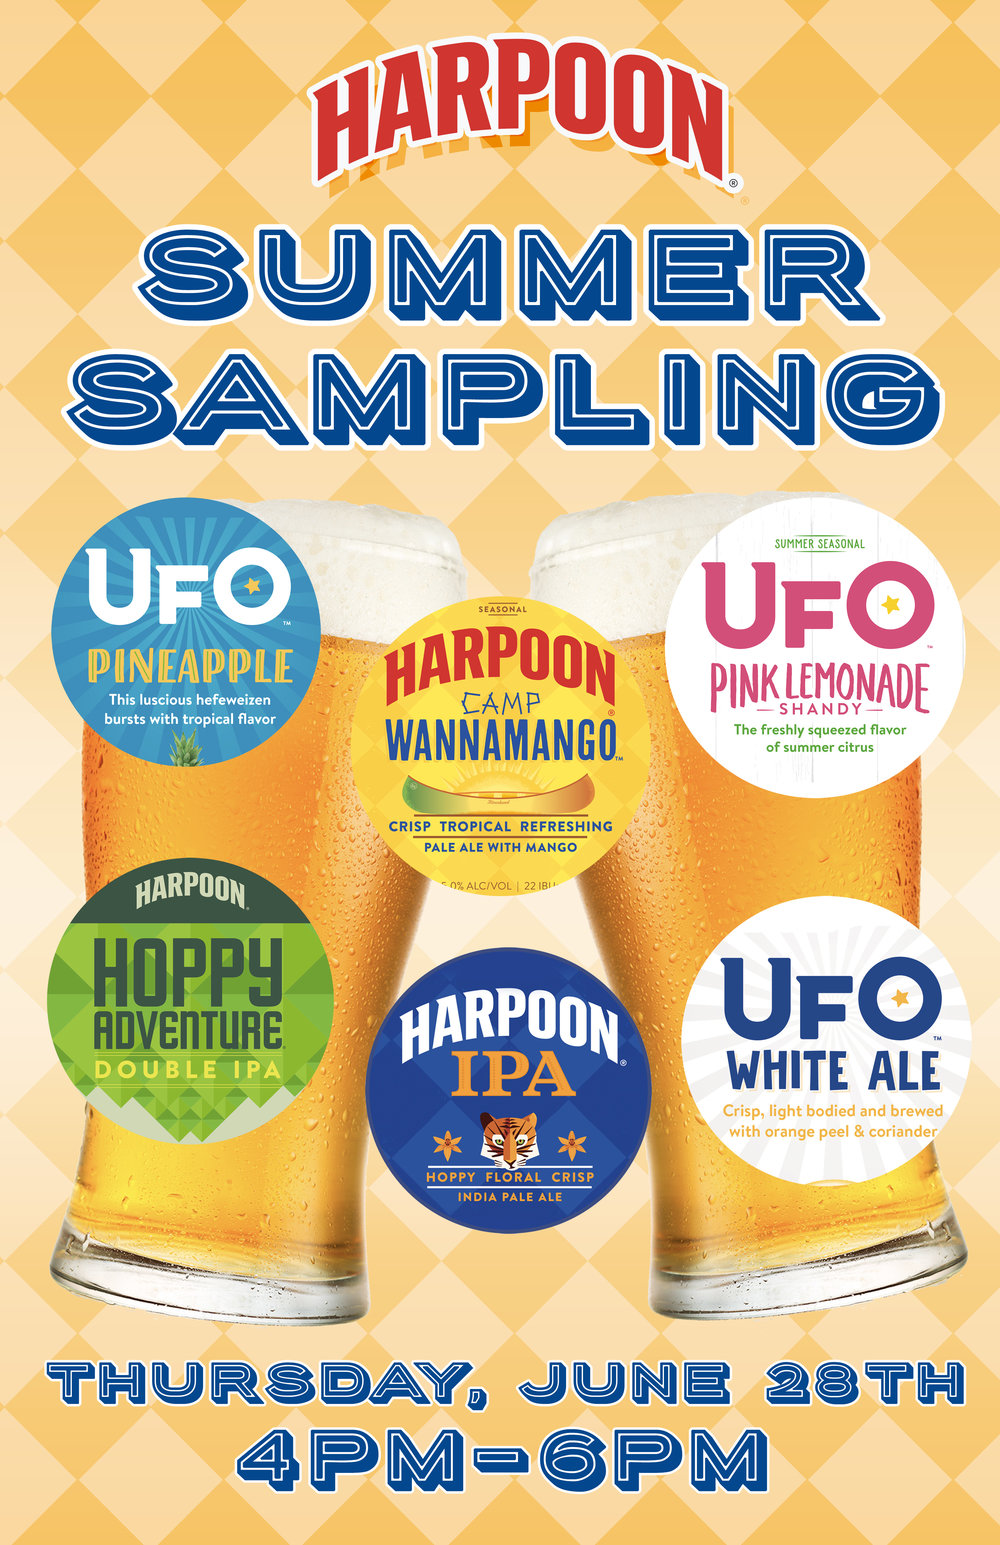 harpoon_summersampling.jpg